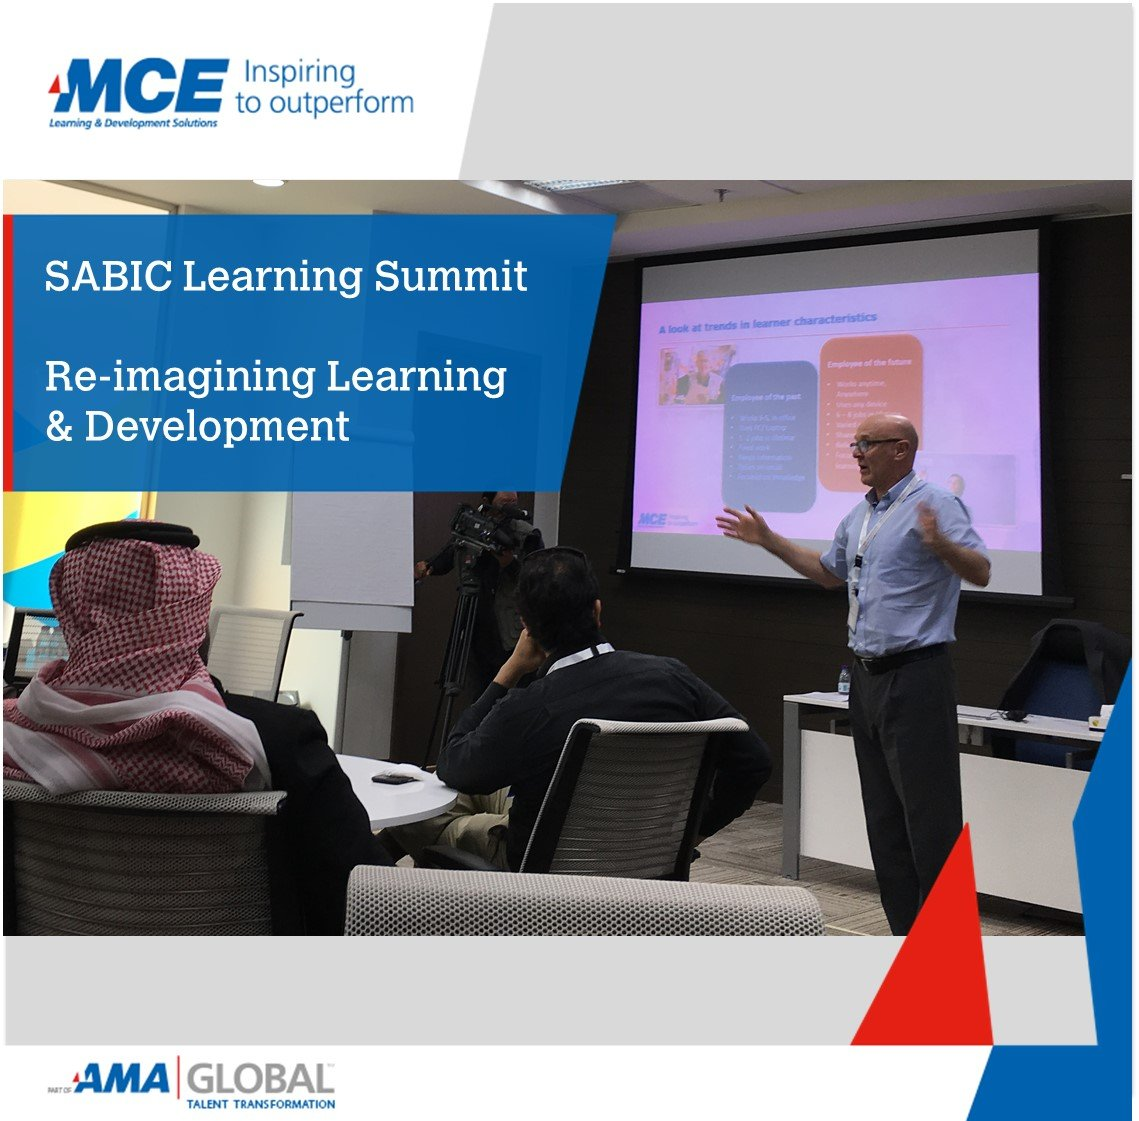 SABIC Learning Summit 2016